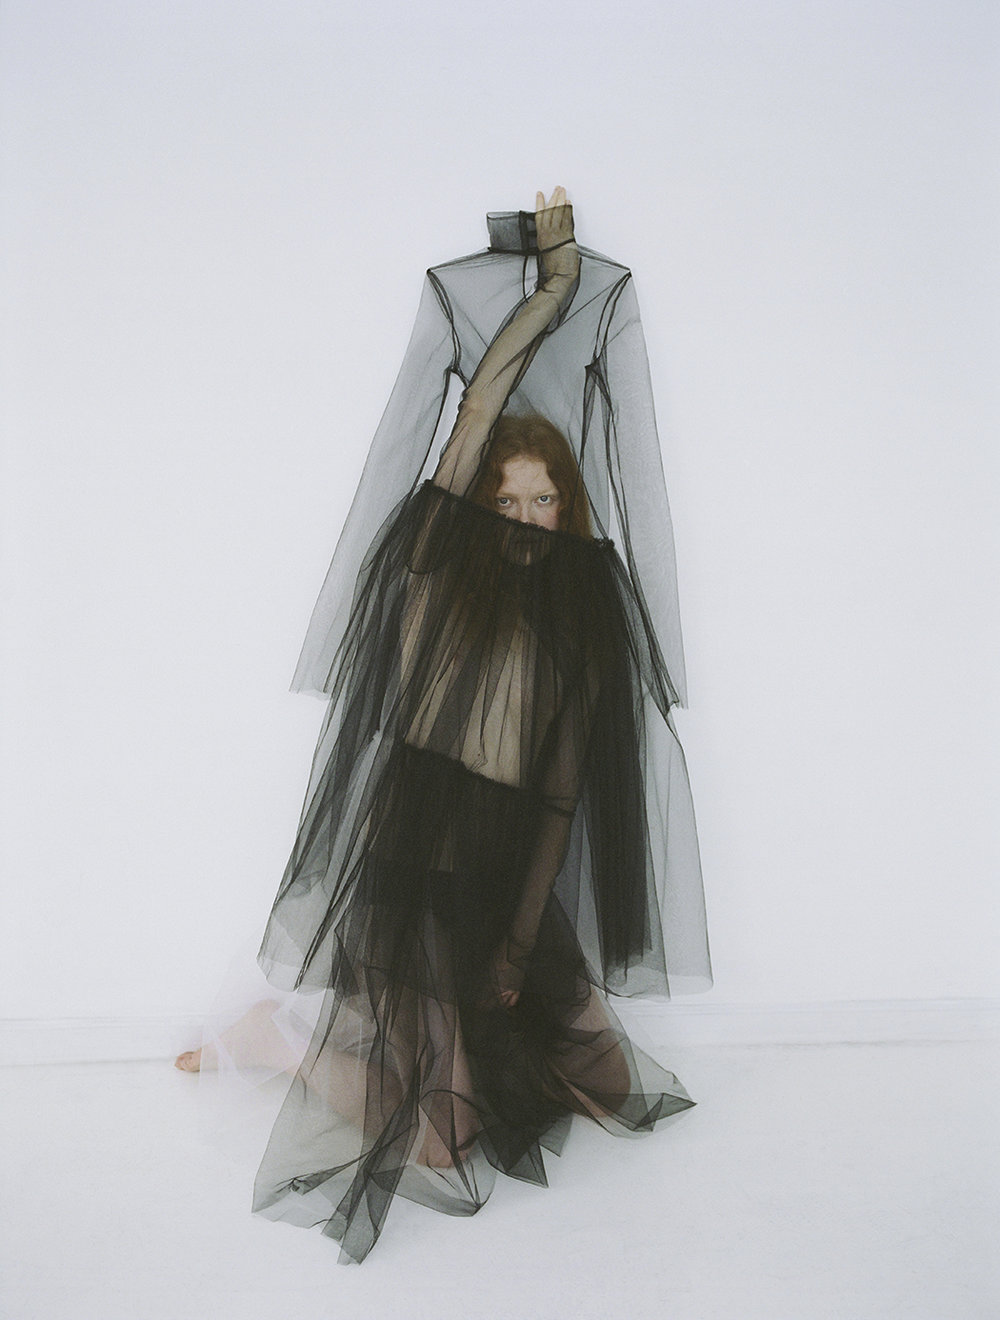 Inspiration - As with most high end designers, they serve as inspiration for me rather than anything I would be able to actually buy, so my main take away from Vega's work is to pair tons of tulle with something utilitarian - I need to get on board with that asap.